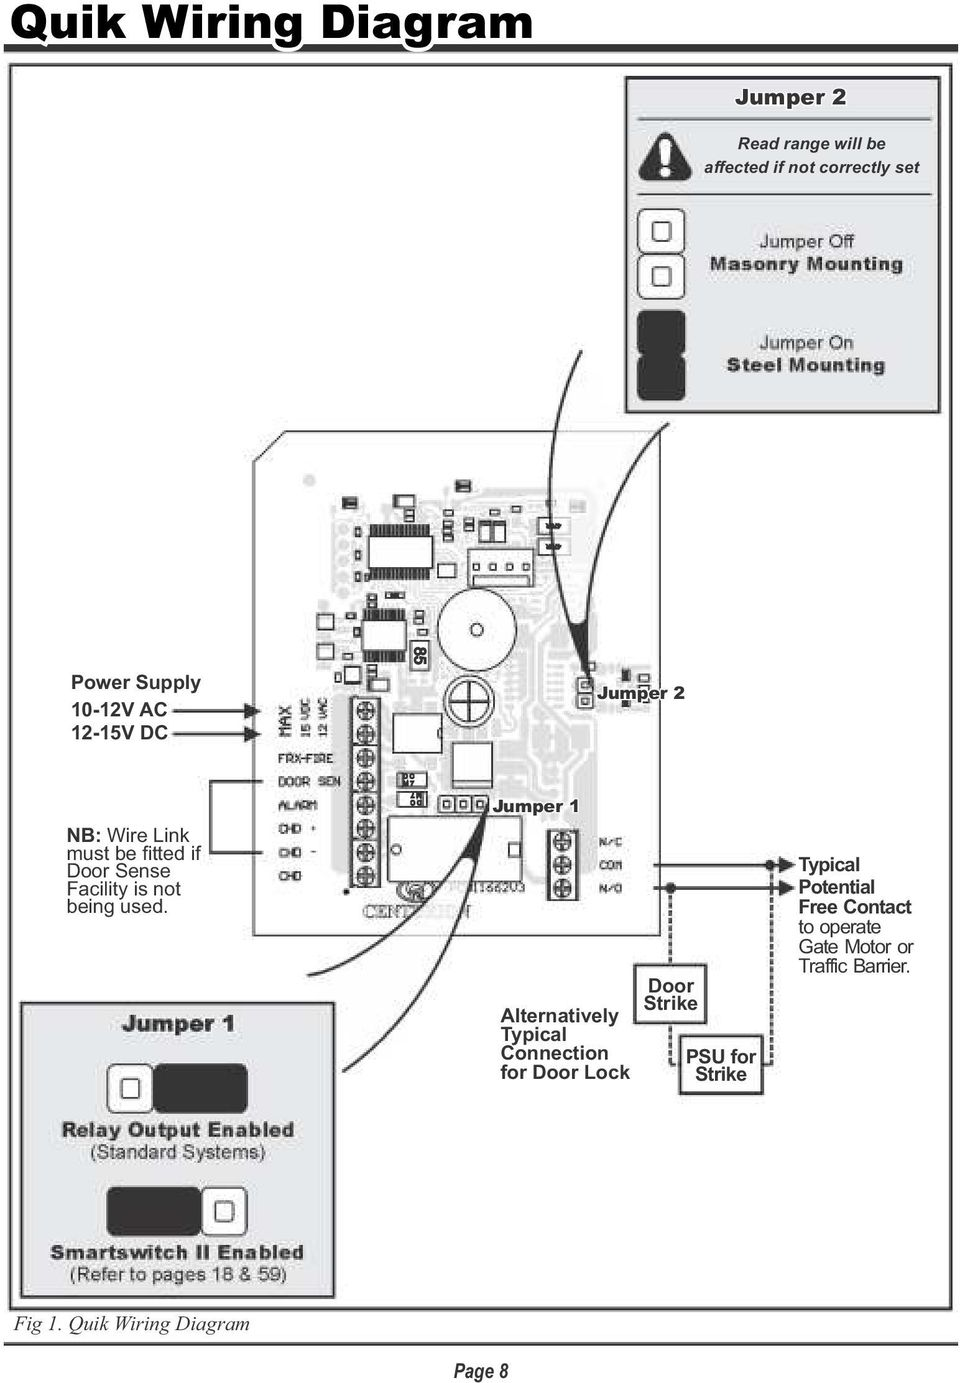 Stand Alone Proximity Access Control System Pdf Door Strike Wiring Diagram Quik Page 8 Is Not Being Used